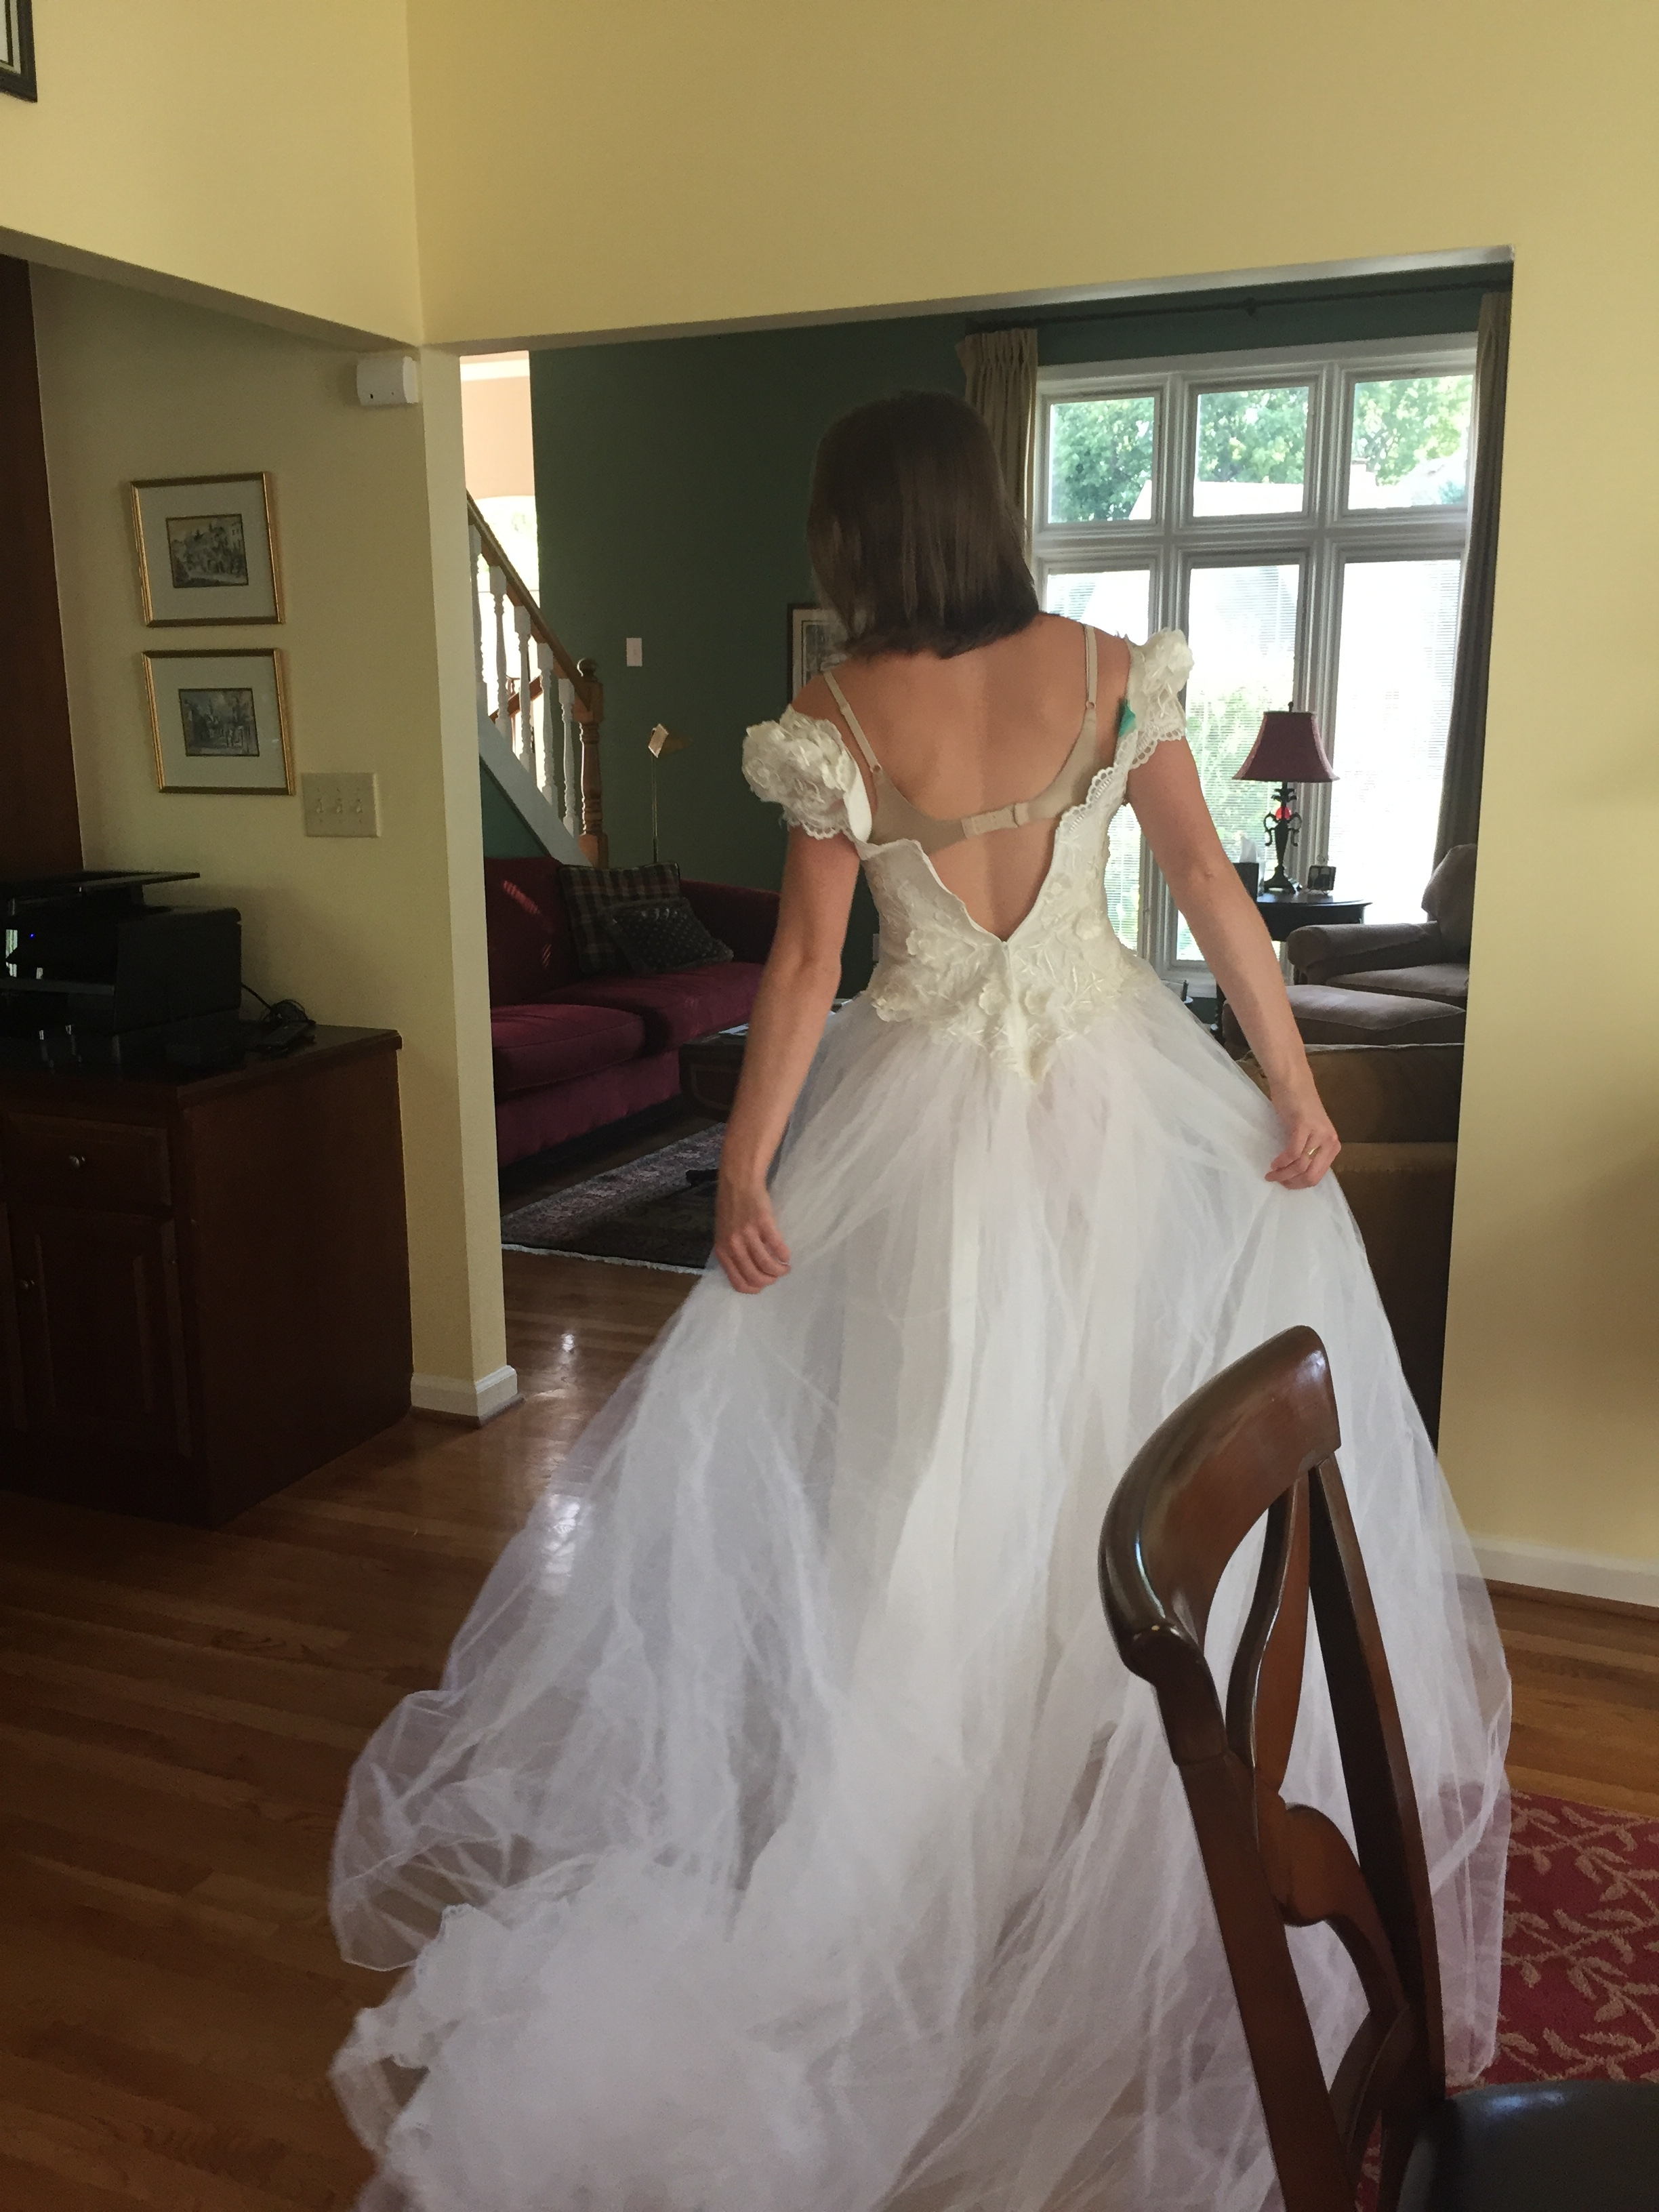 How to update my mom\'s 80s dress? — The Knot